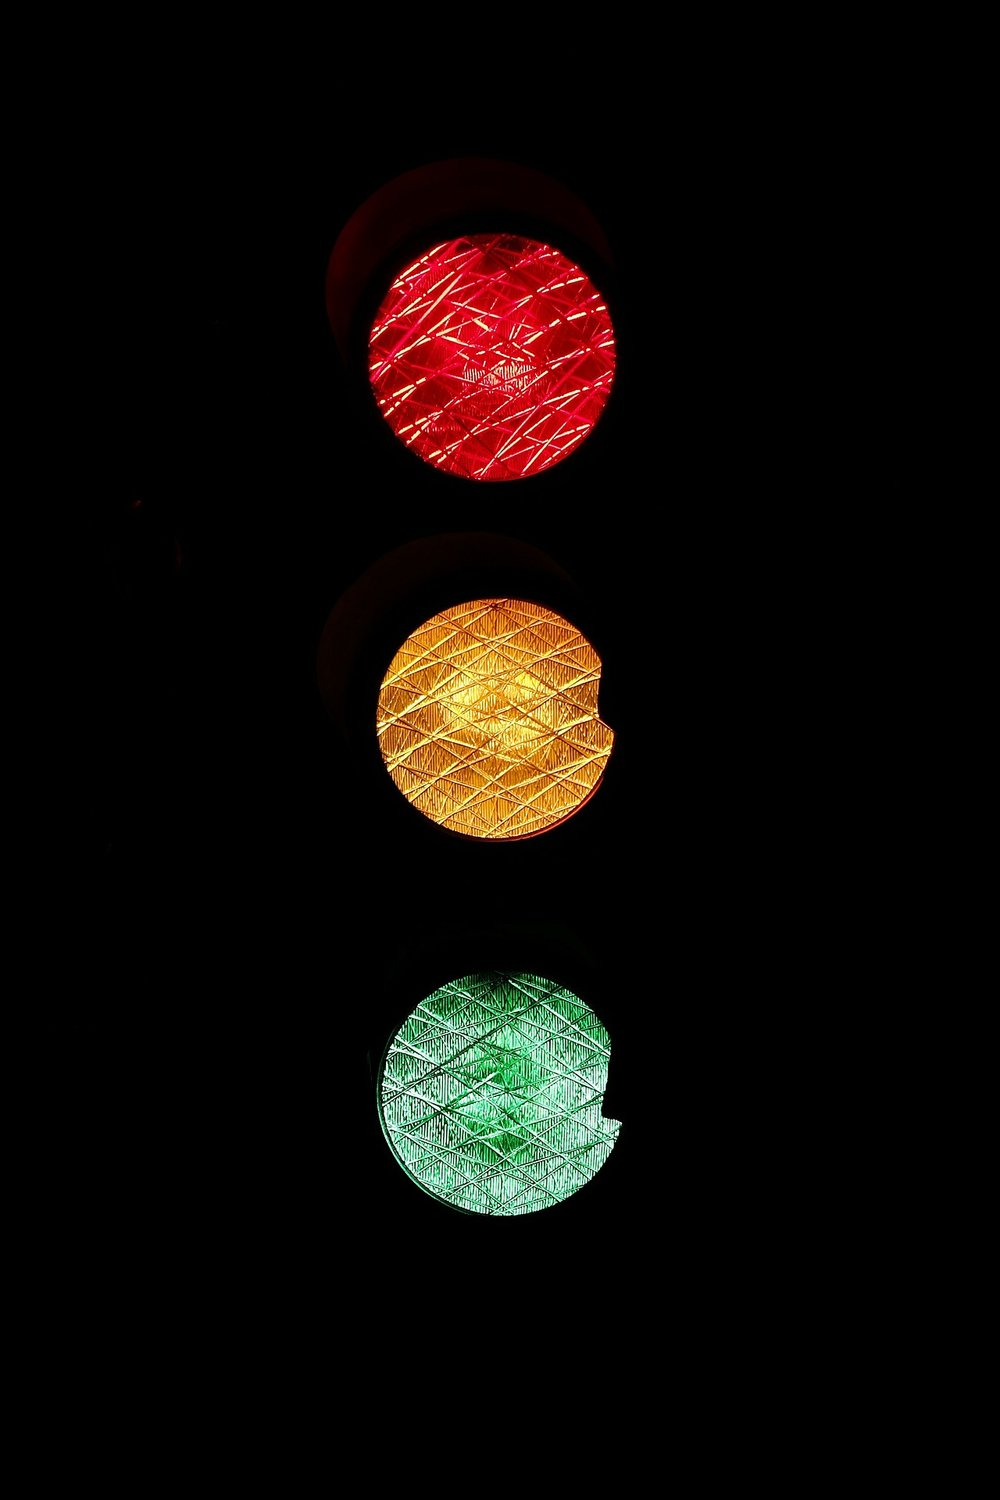 traffic-lights-514932_1920.jpg